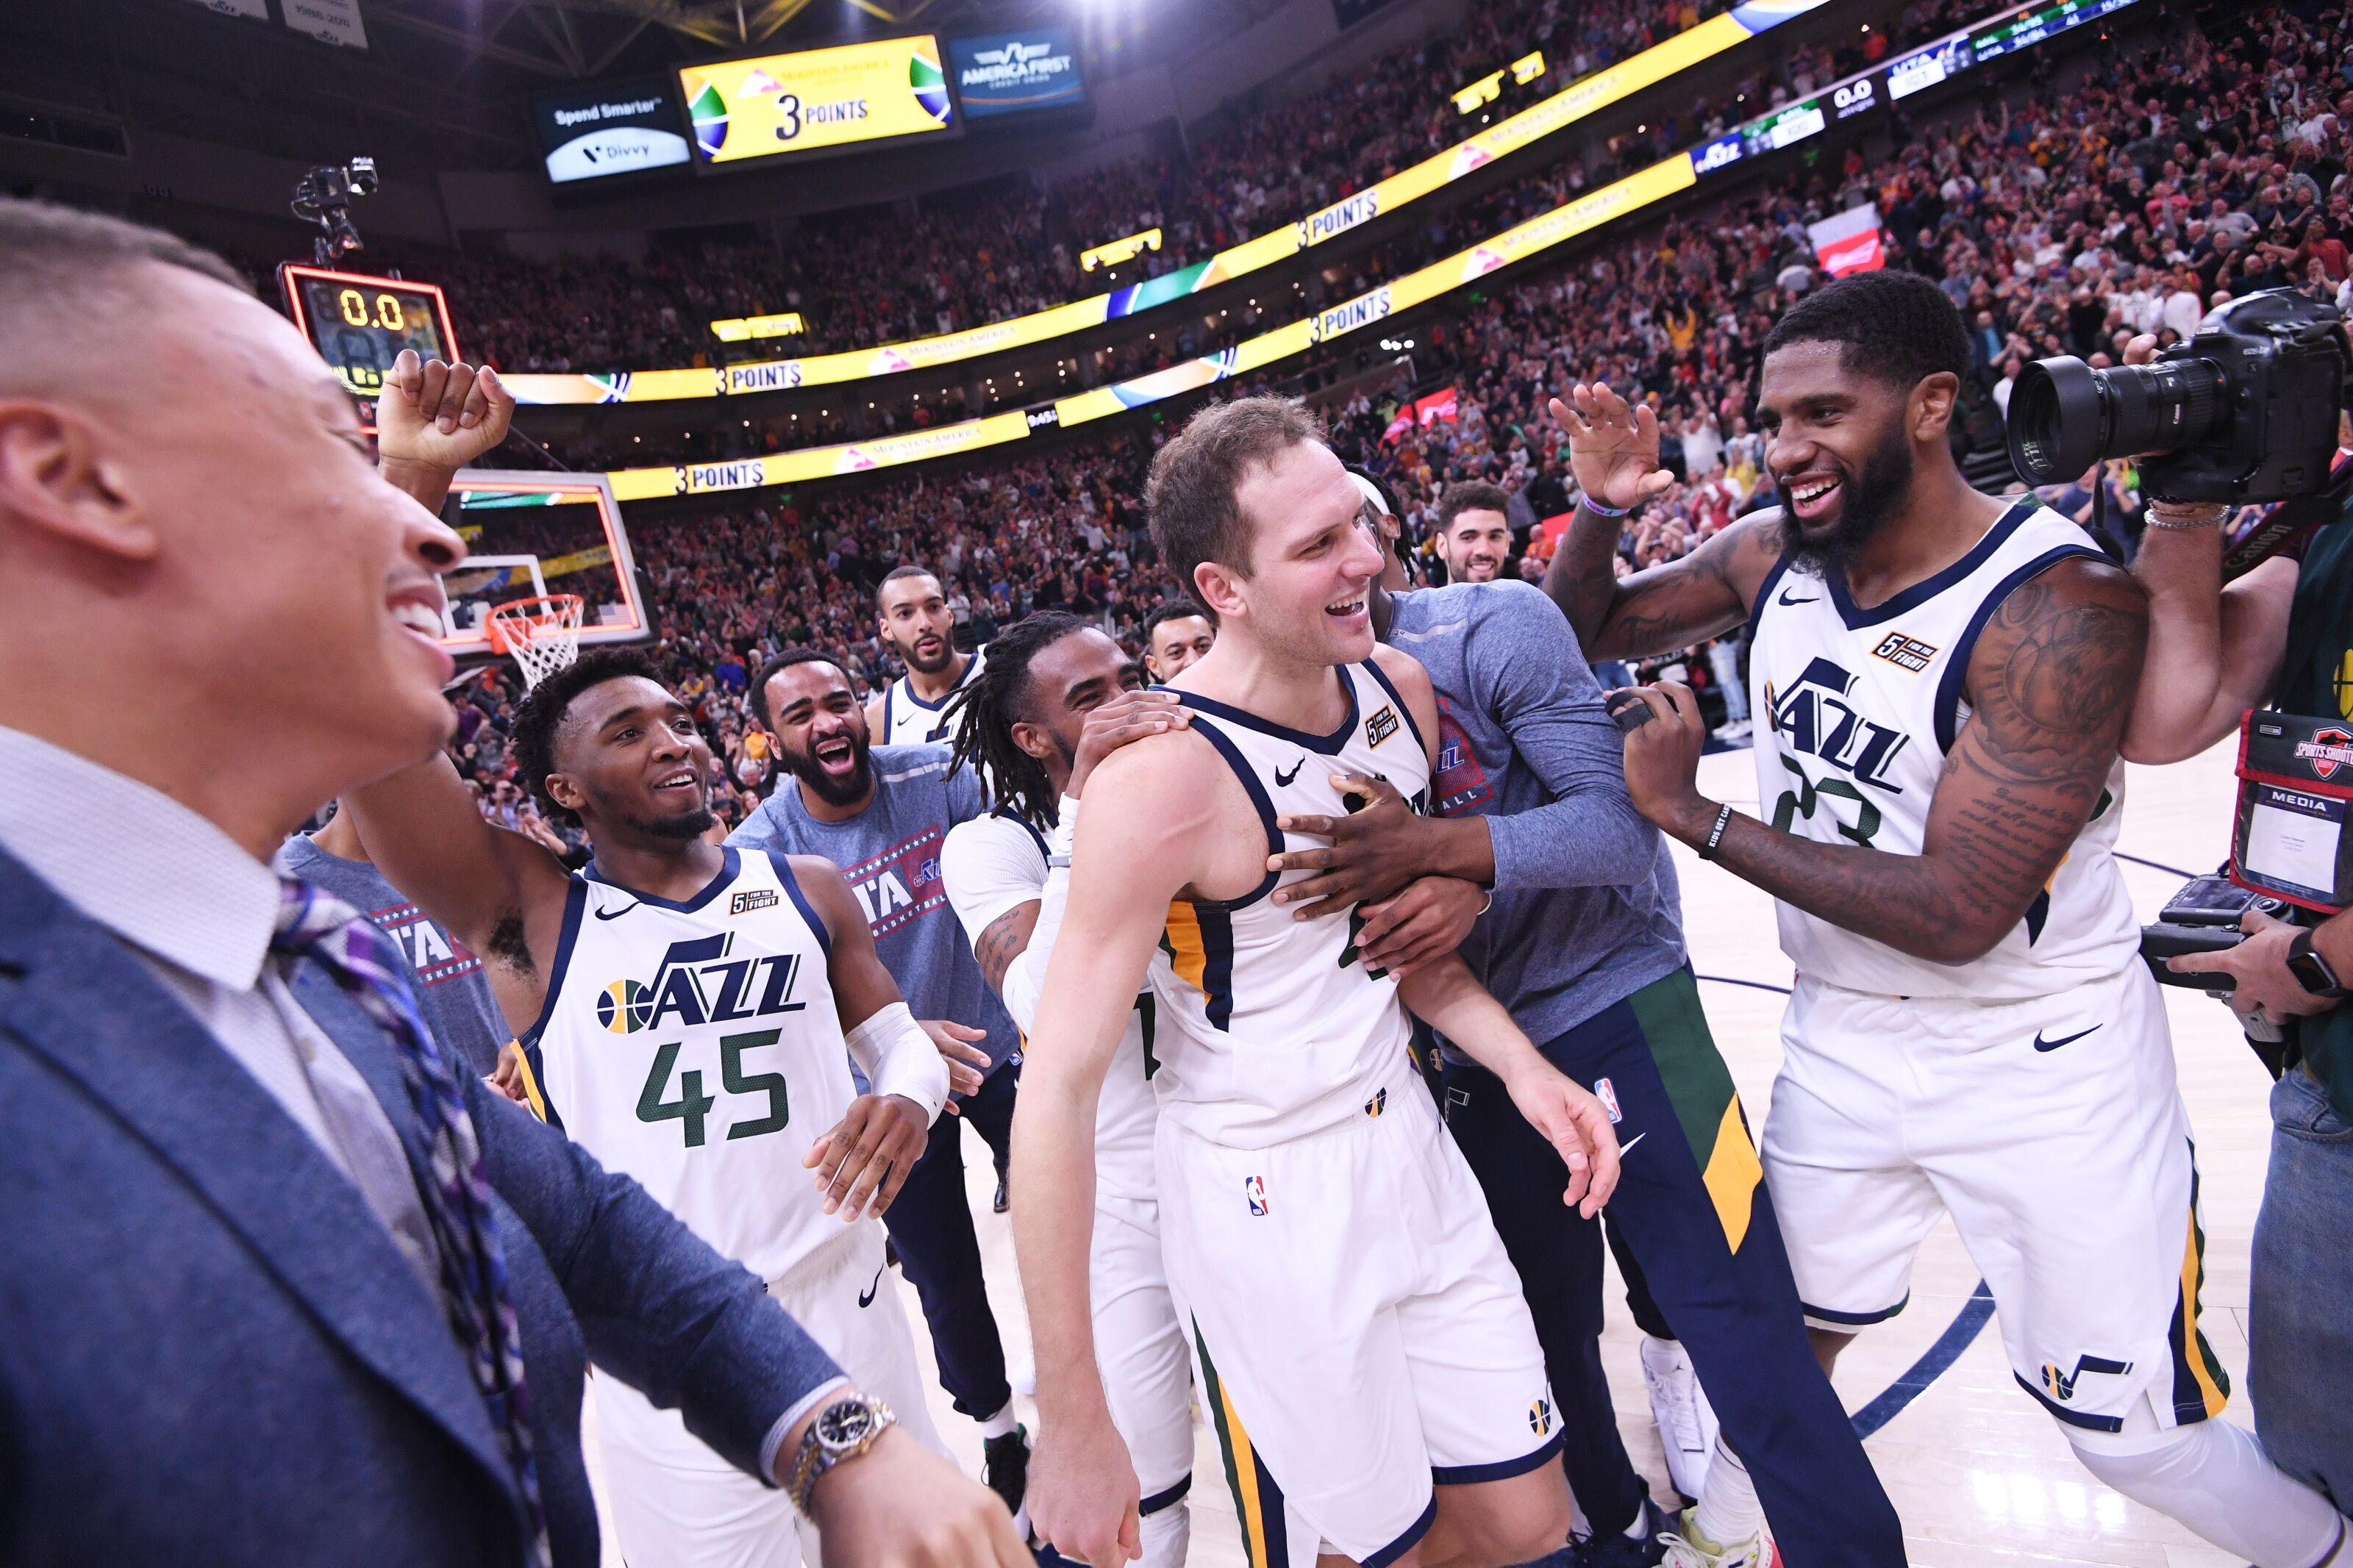 Utah Jazz prove they belong among league's elite with back-to-back statement wins